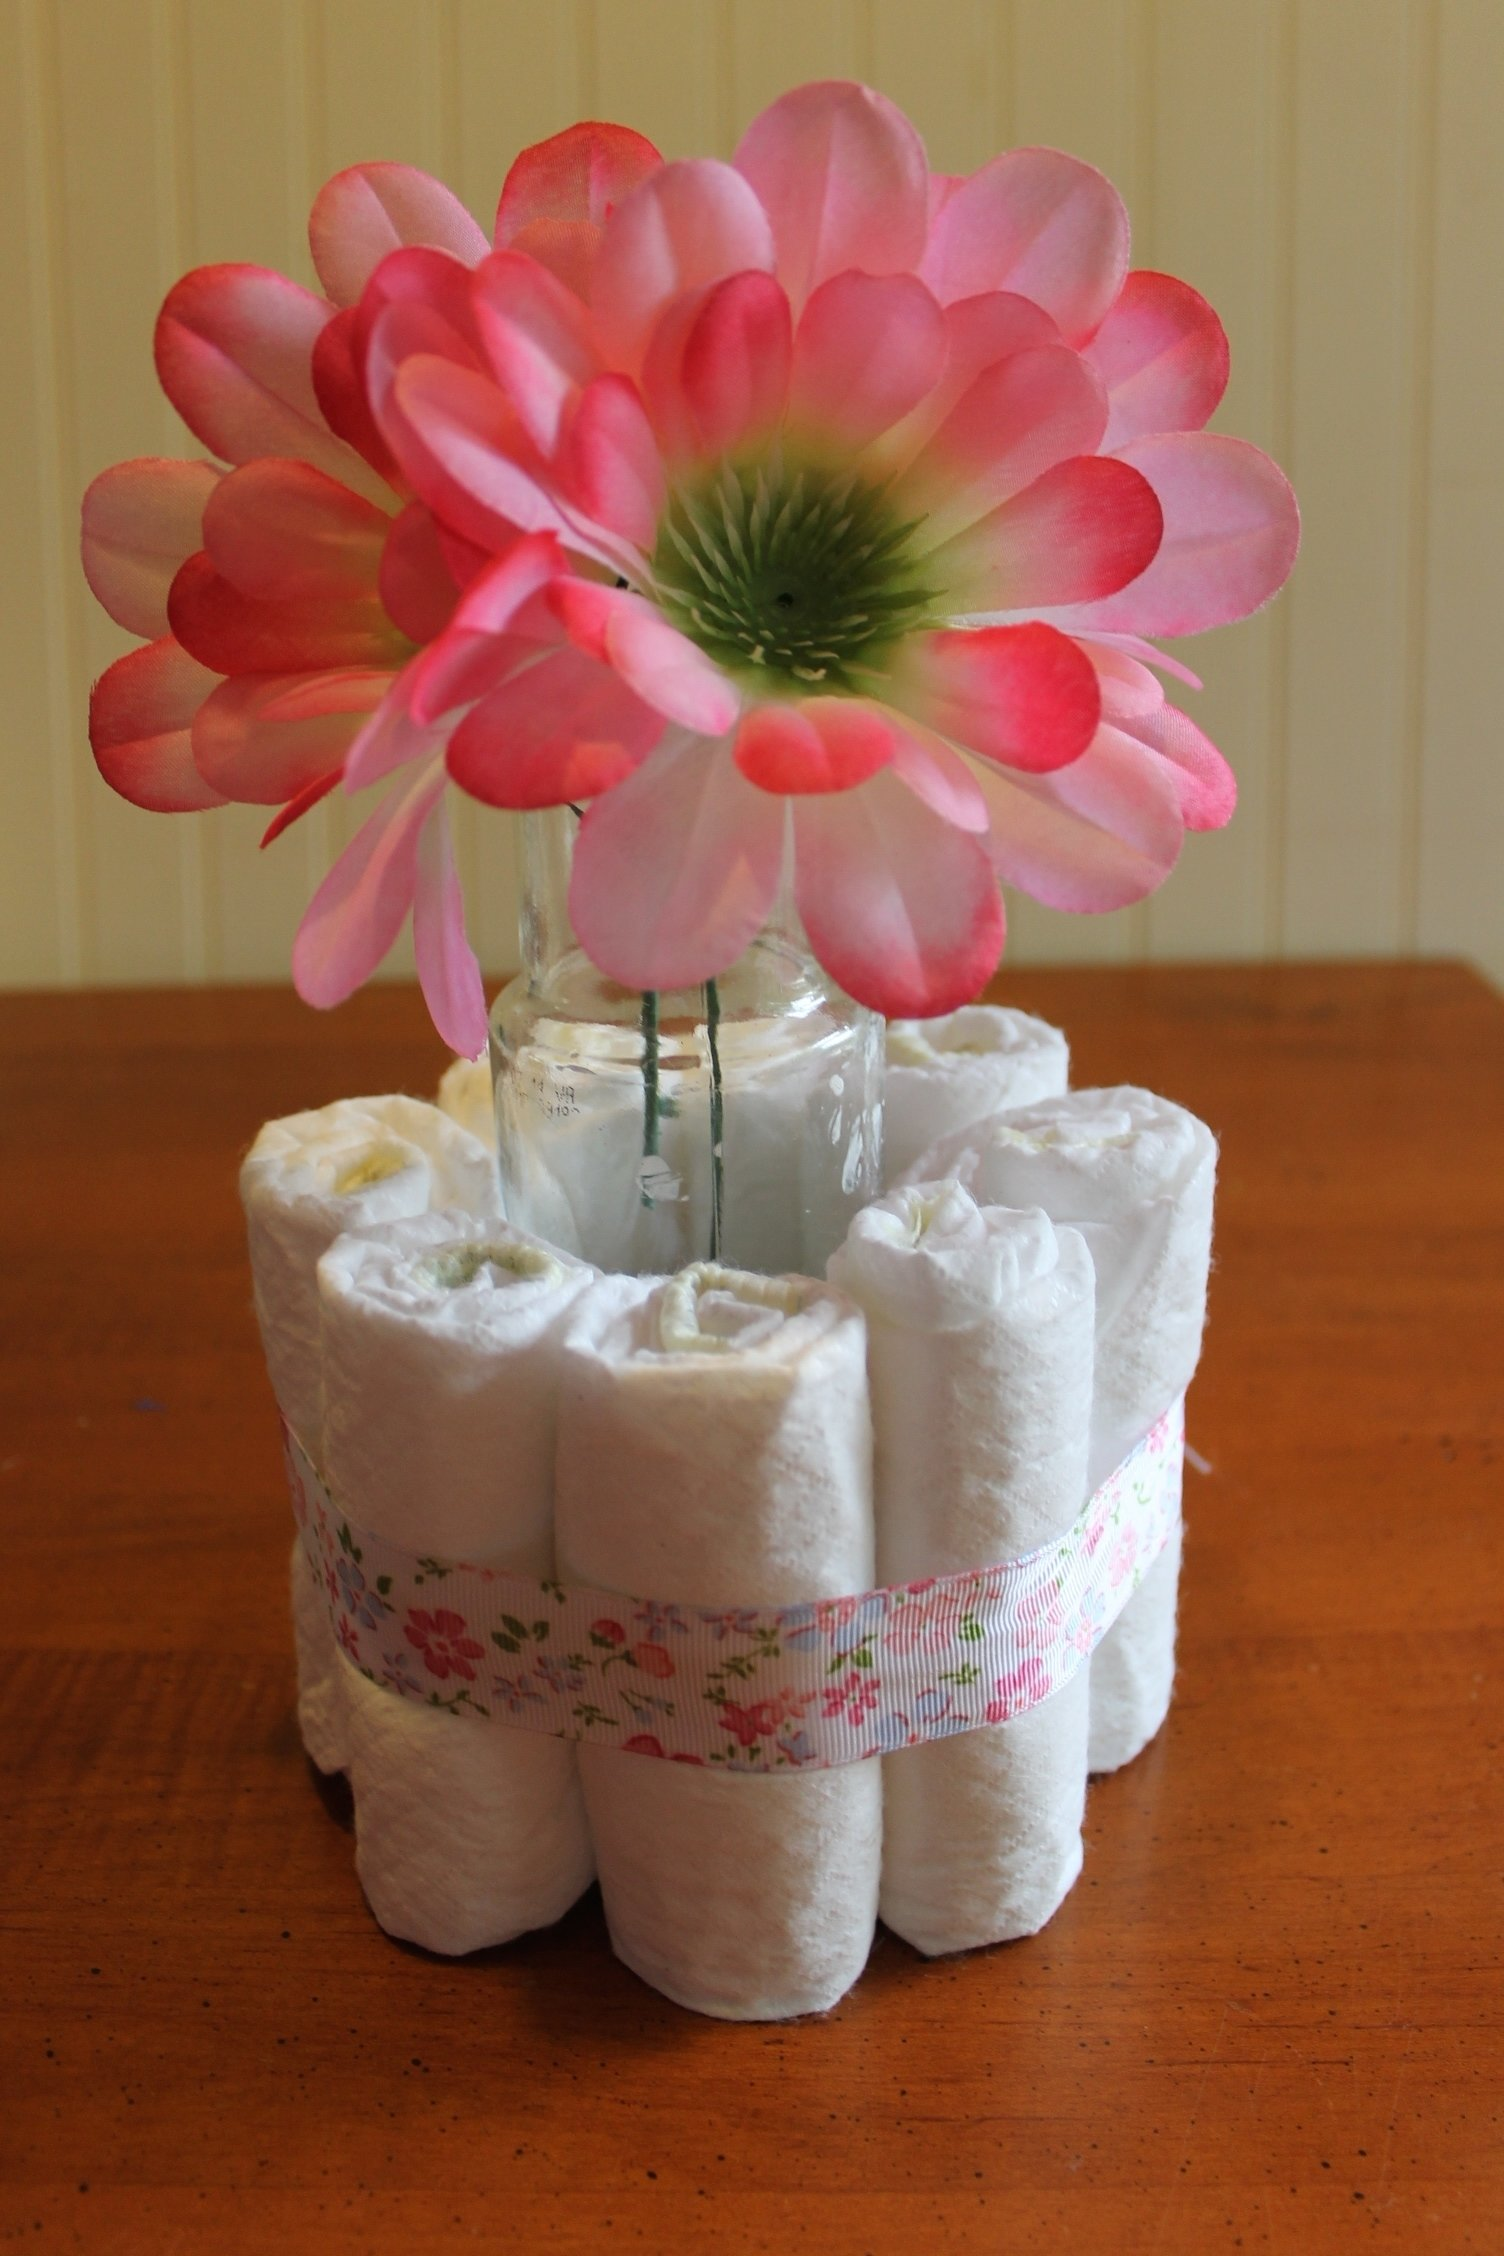 10 Most Popular Baby Shower Table Centerpiece Ideas diy baby shower centerpieces using diapers frugal fanatic 2 2021